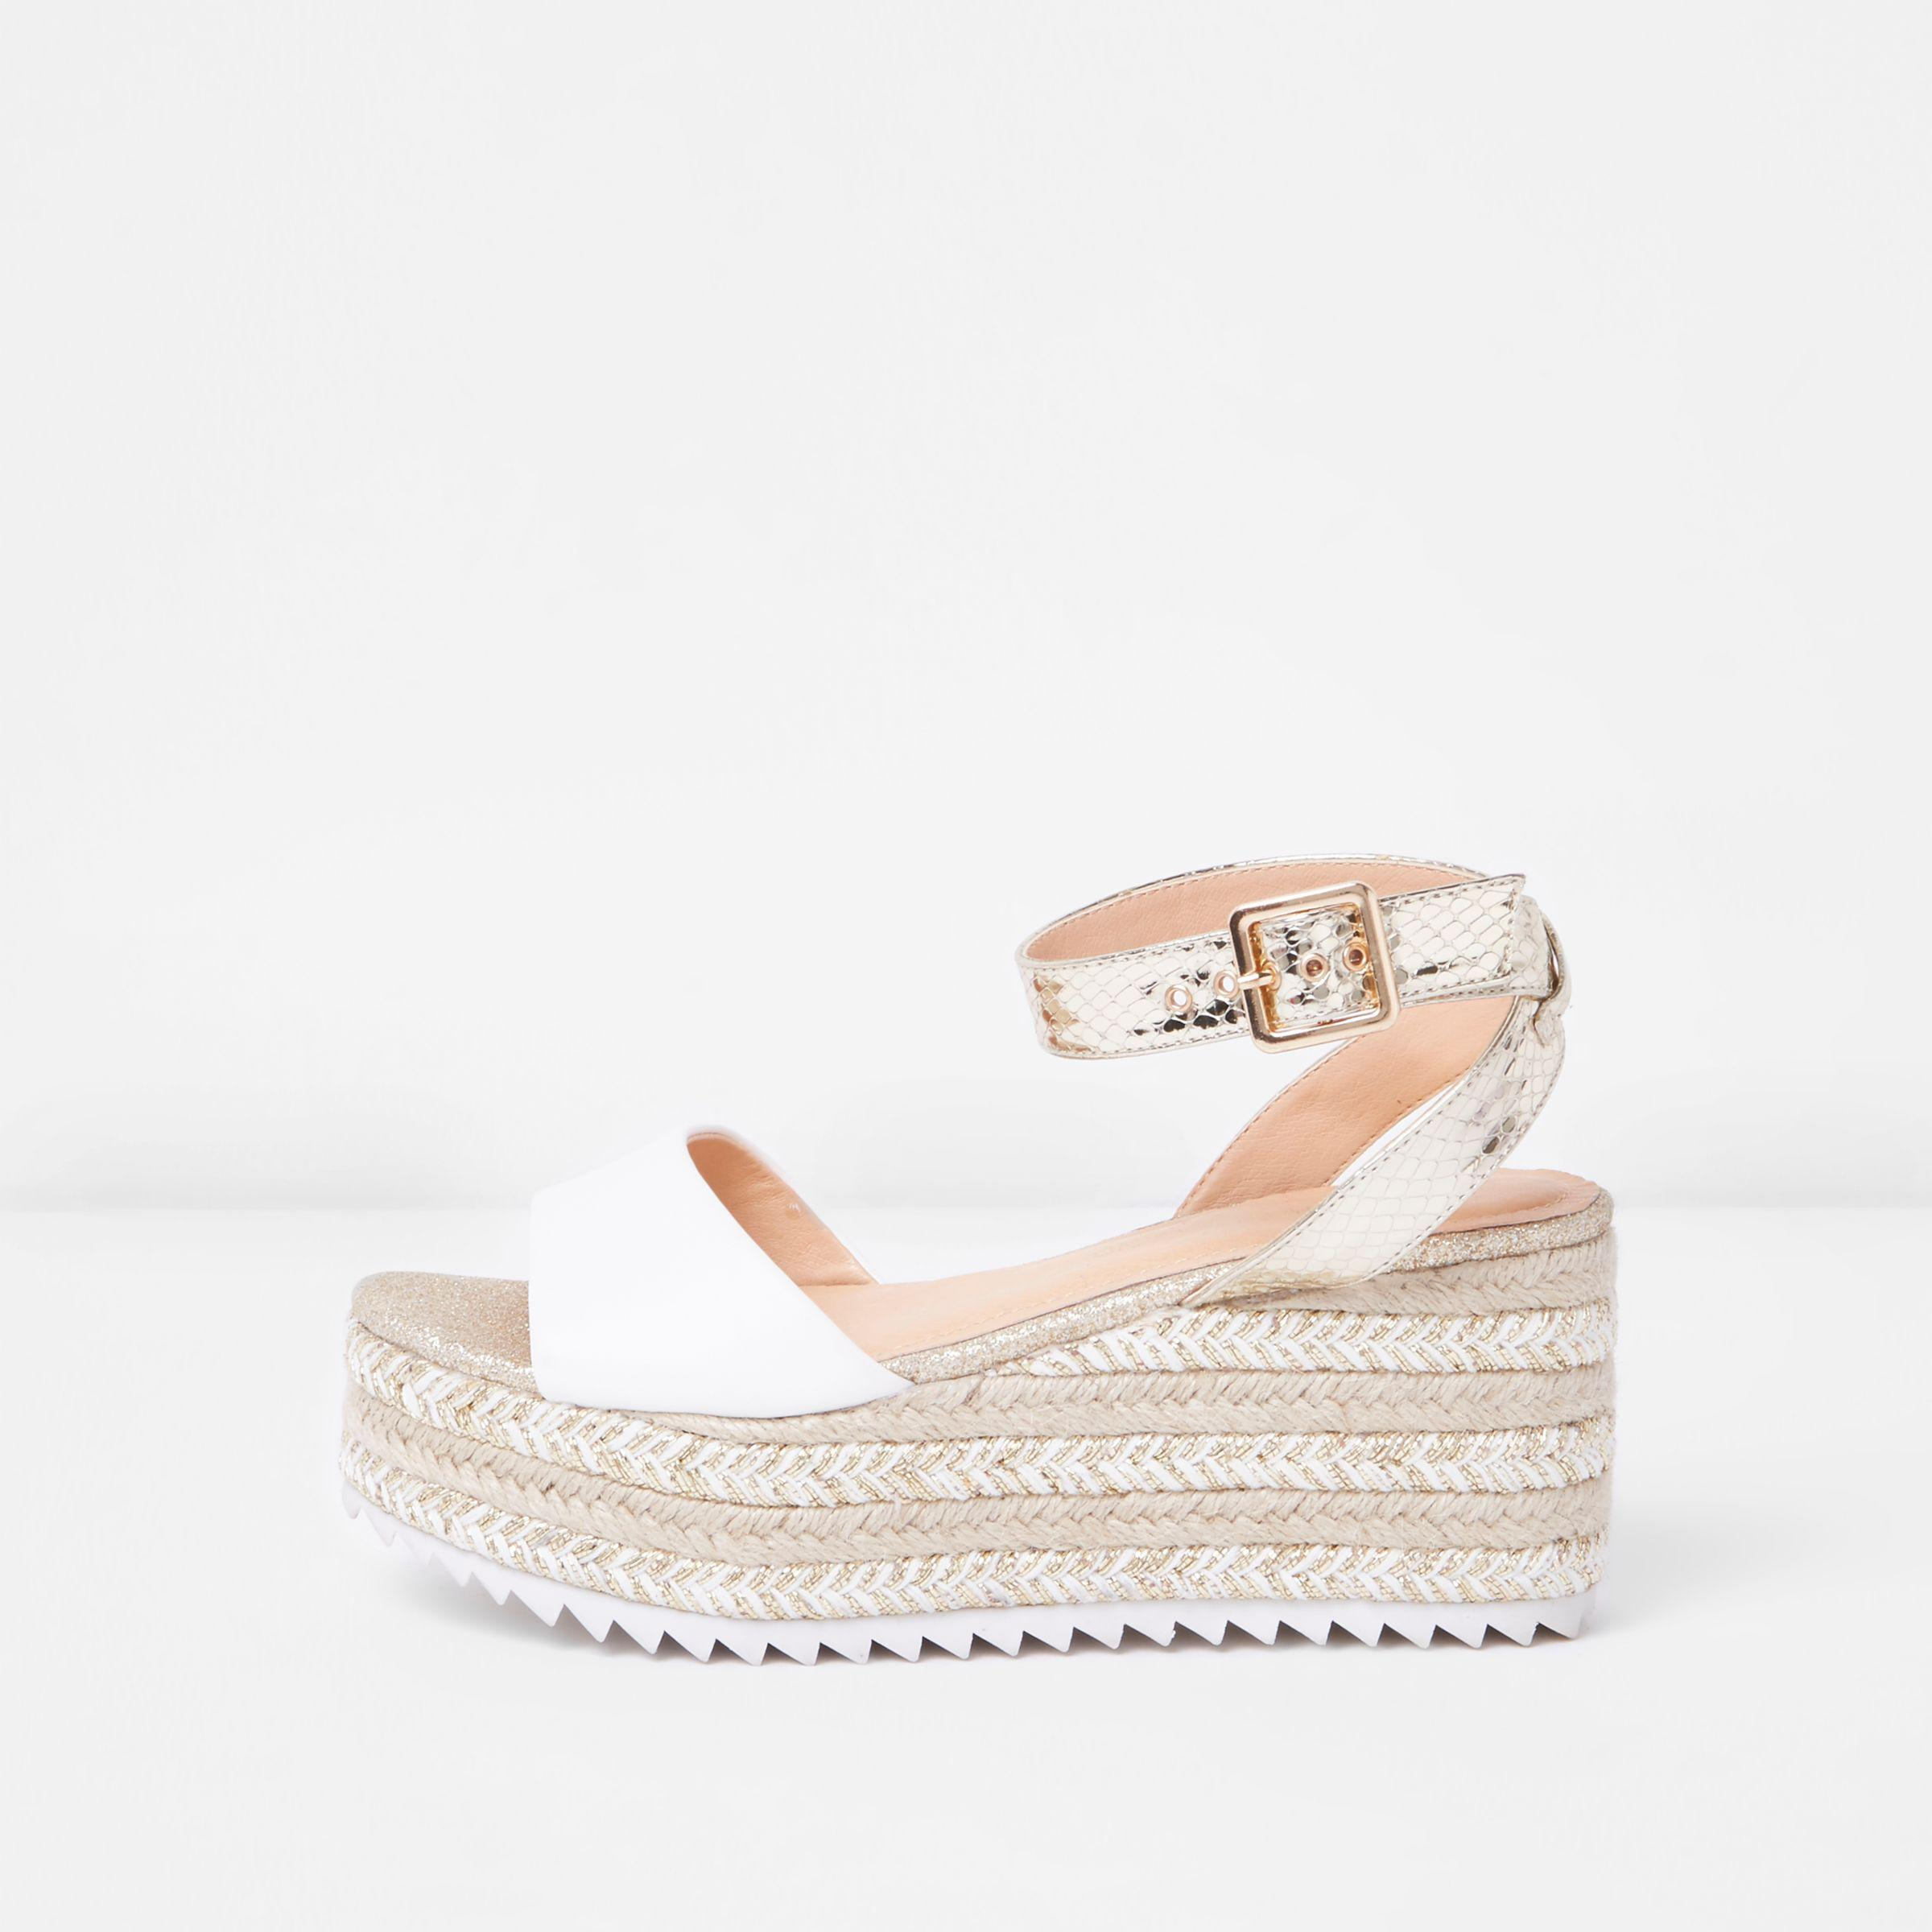 85abcfa174bf River Island Gold Two Part Espadrille Wedge Sandals in Metallic - Lyst